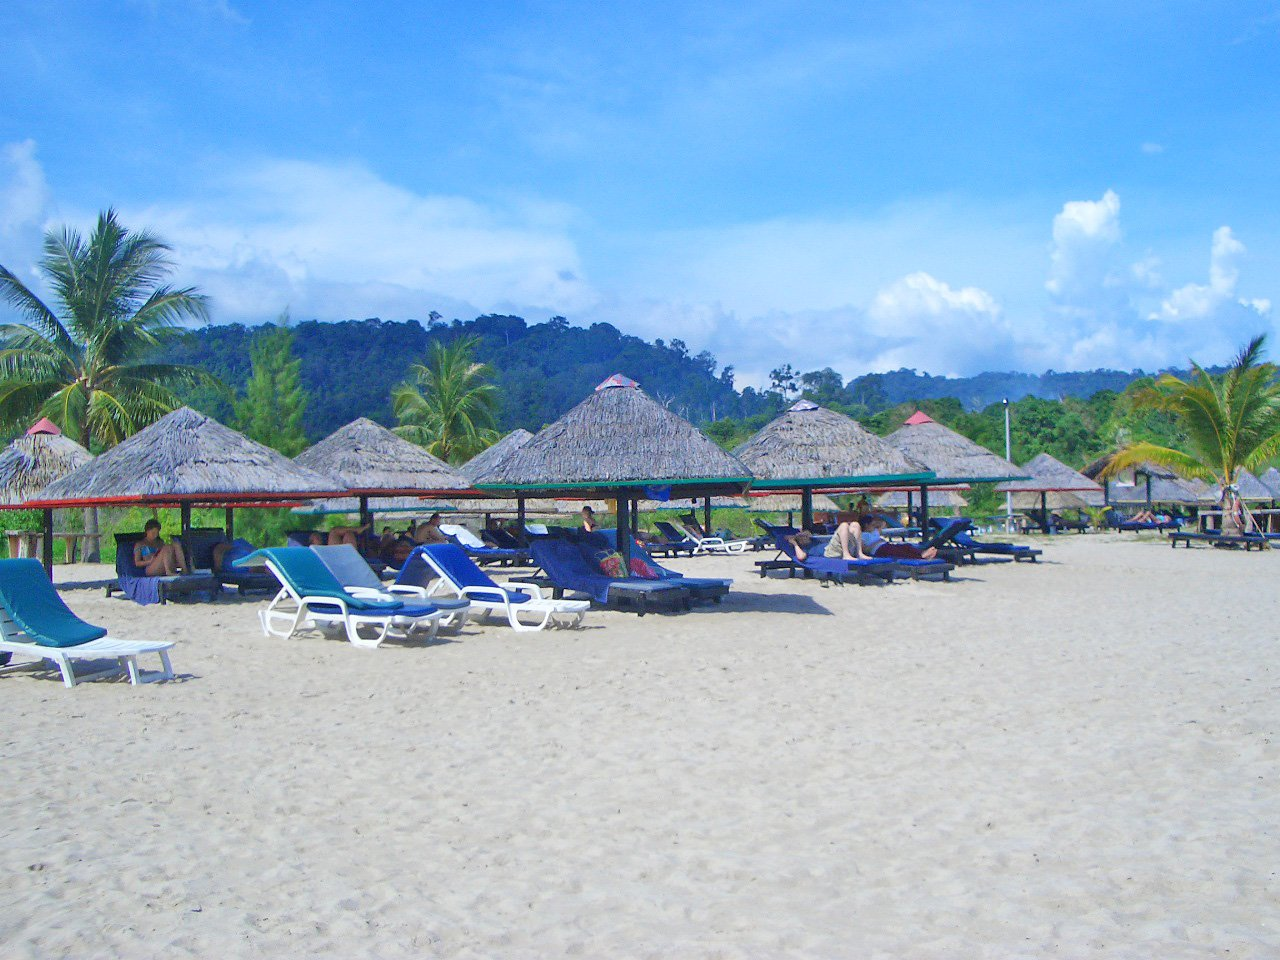 Langkawi The Idyllic Island: Free Langkawi Island 7 Stock Photo